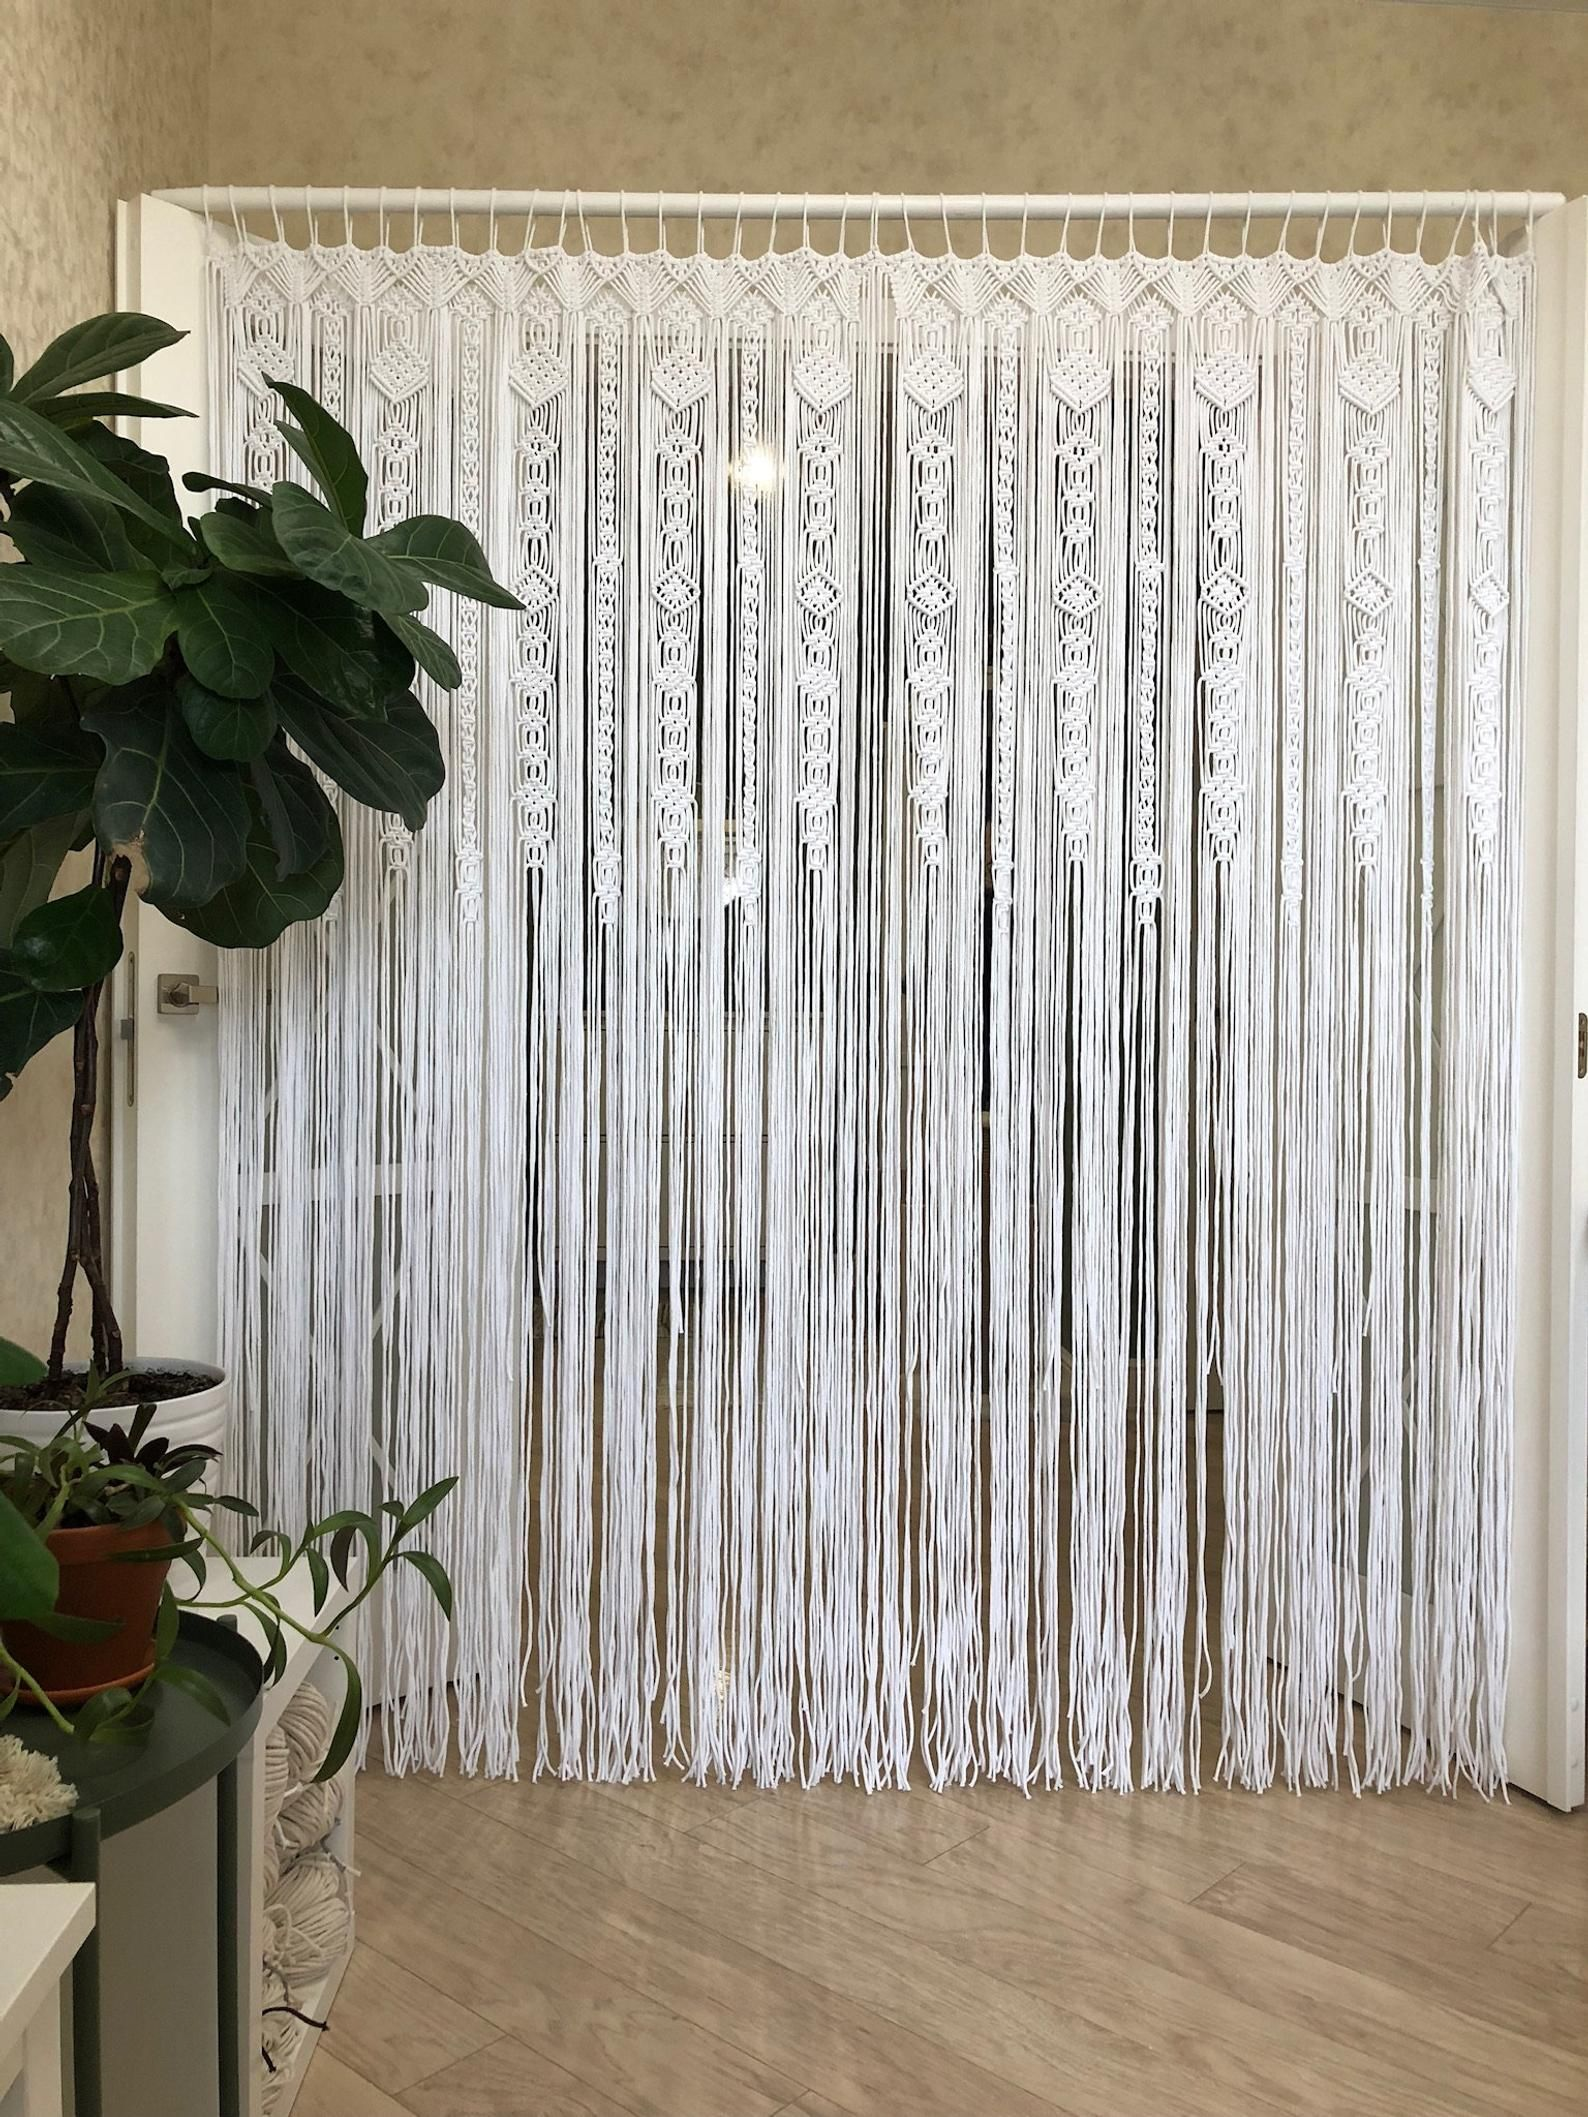 Large Macrame Door Curtains Of 2 Or 1 Panels Macrame Window Etsy Macrame Door Curtain Beaded Door Curtains Door Curtains